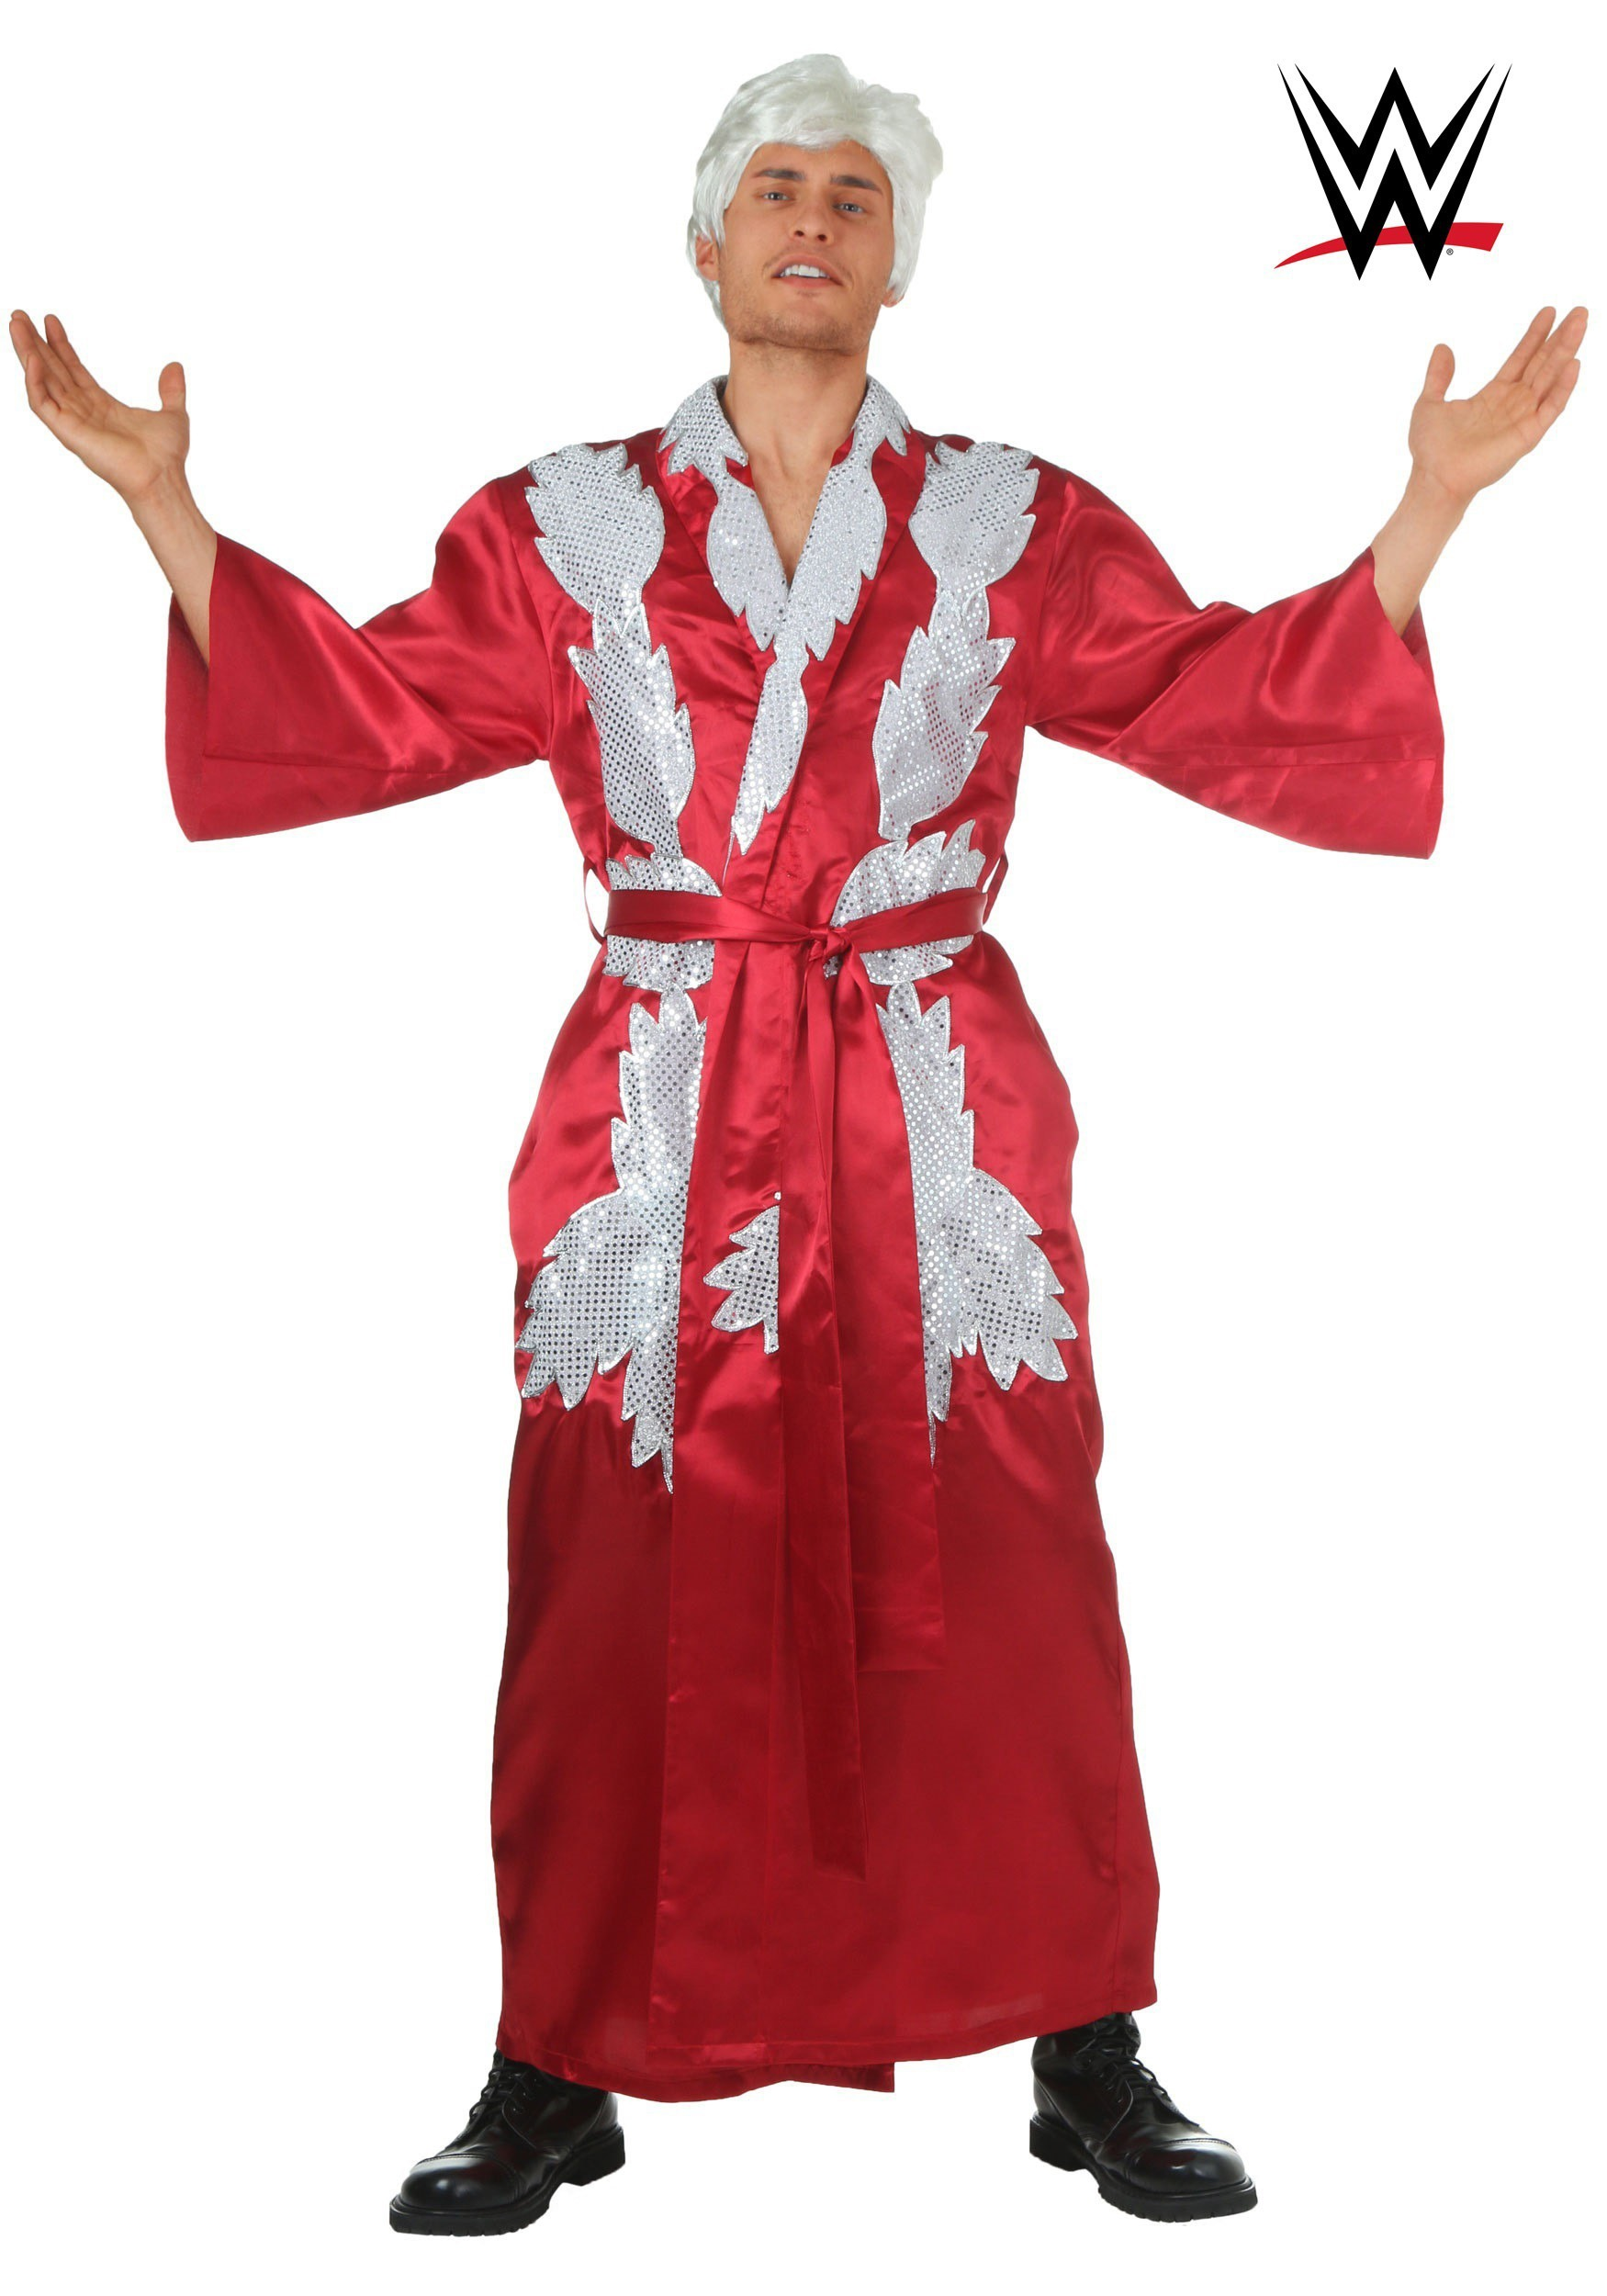 Plus Size Men's Ric Flair Costume FUN6097PL